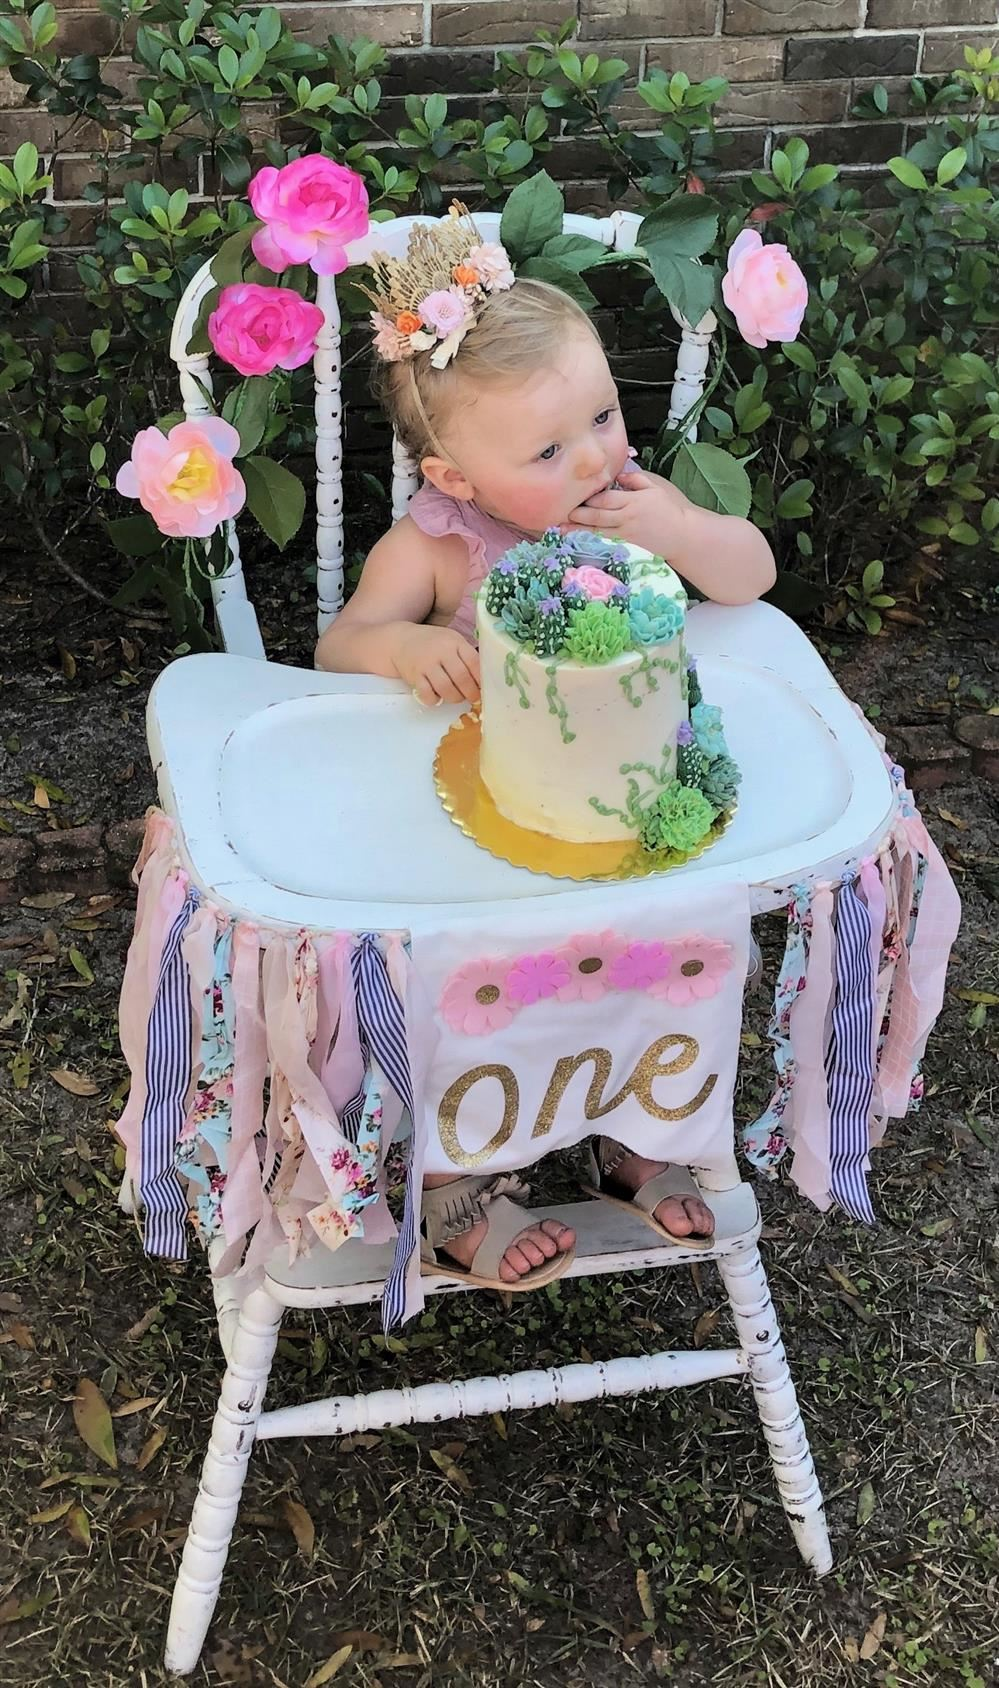 Natalie is ONE!